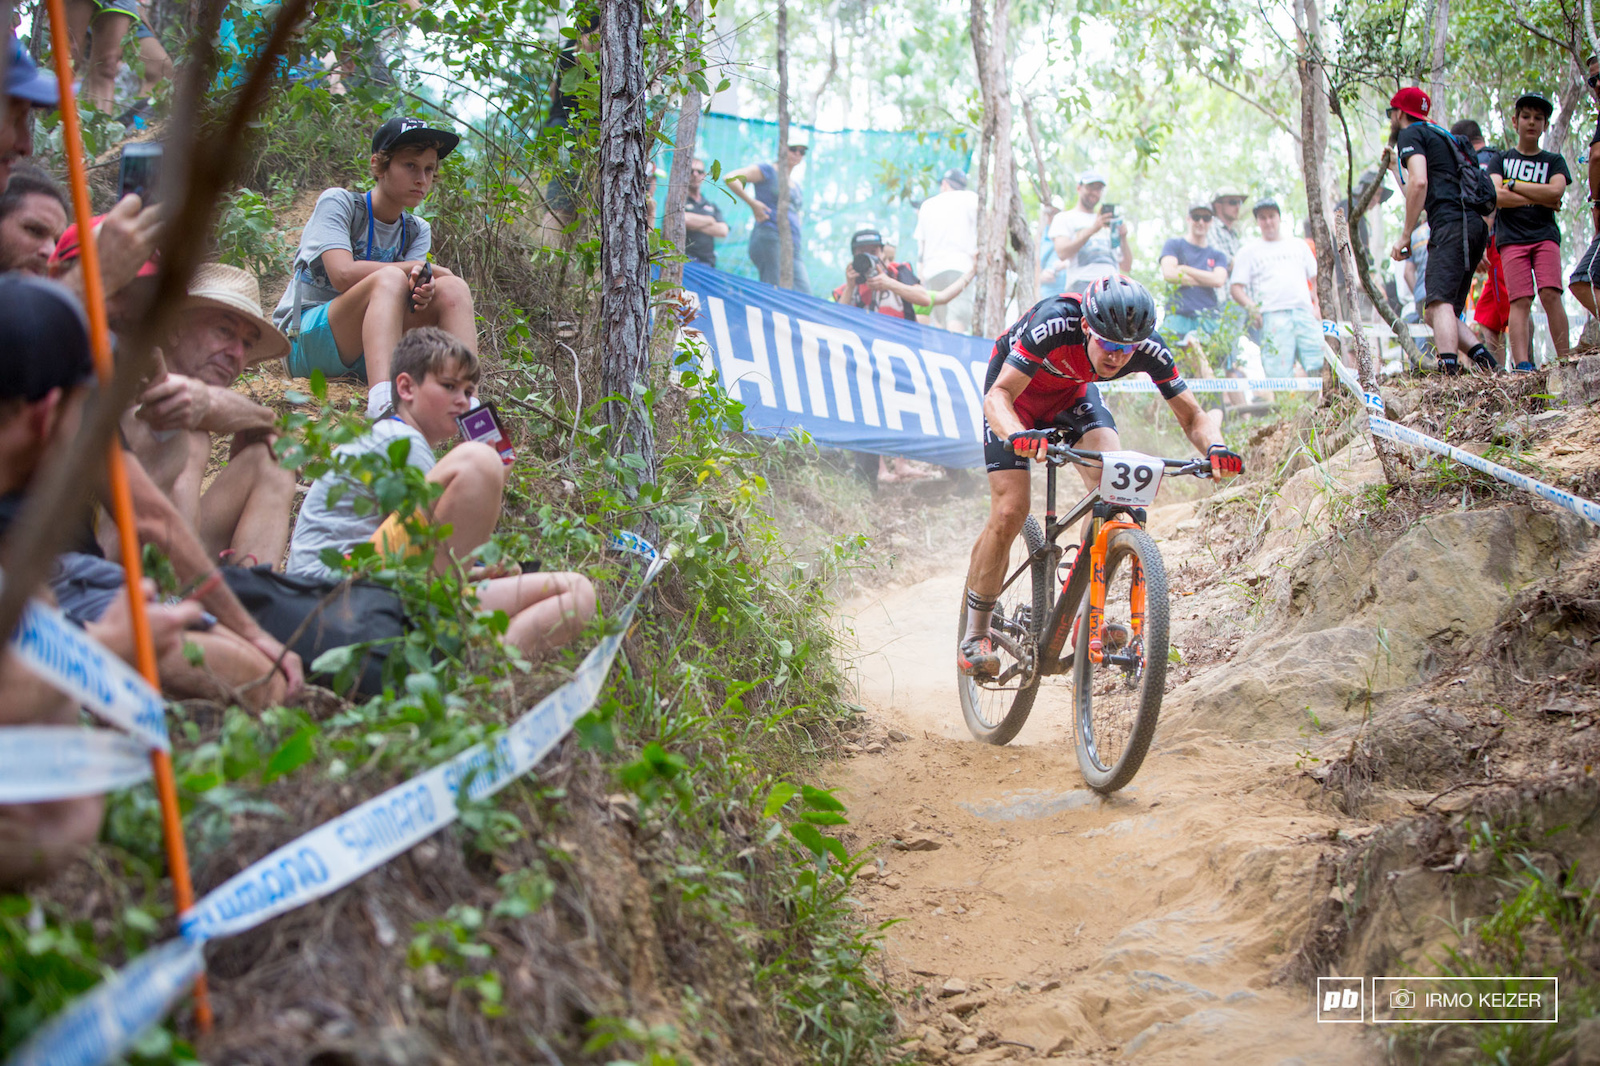 Lars Forster s first elite level World Cup race went pretty well with a sixth. Watch this man.